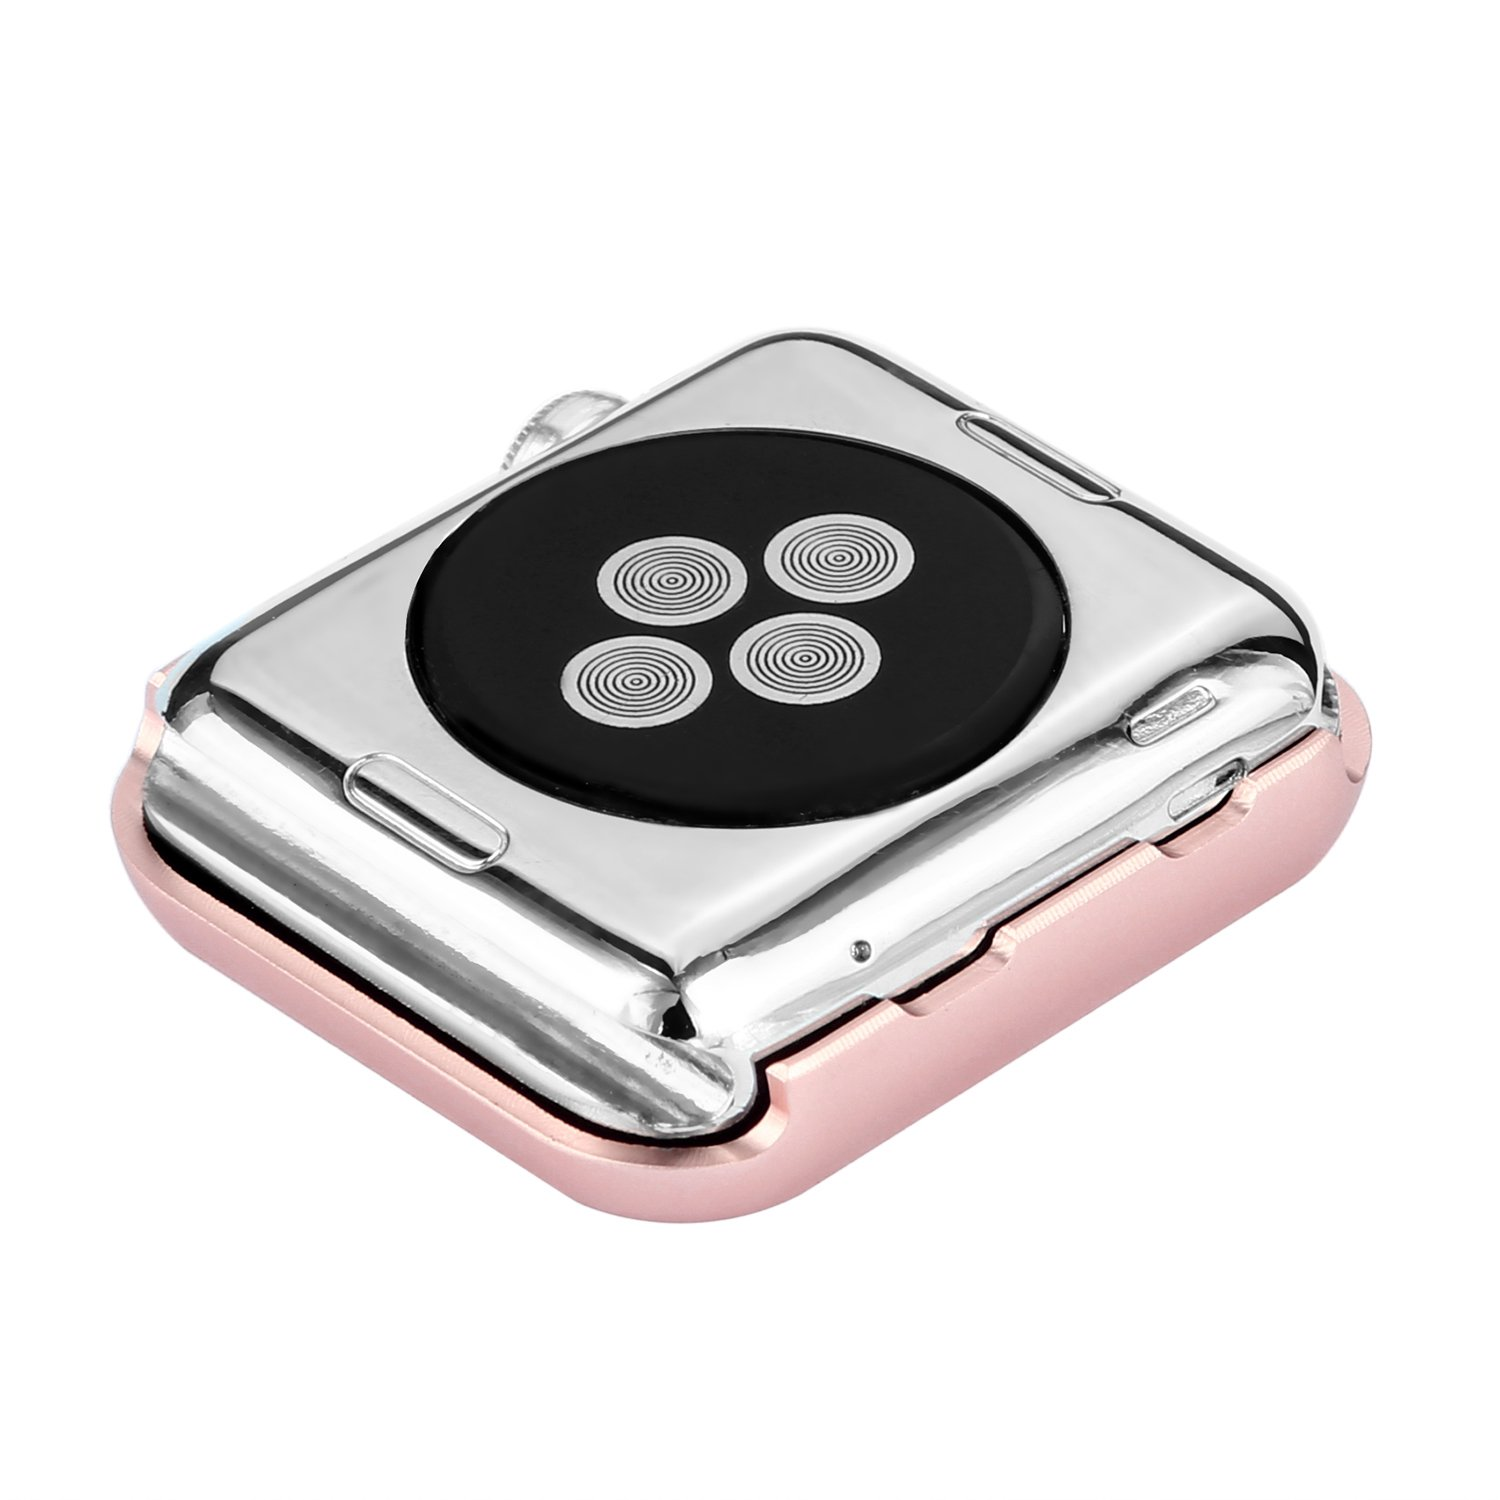 Apple Watch Bumper 42mm, iWatch Crystal Rhinestone Diamond Aluminum Case Shell Protective Frame Cover for 42mm Apple Watch Series 3/2/1 - Rose Gold by Clatune (Image #5)